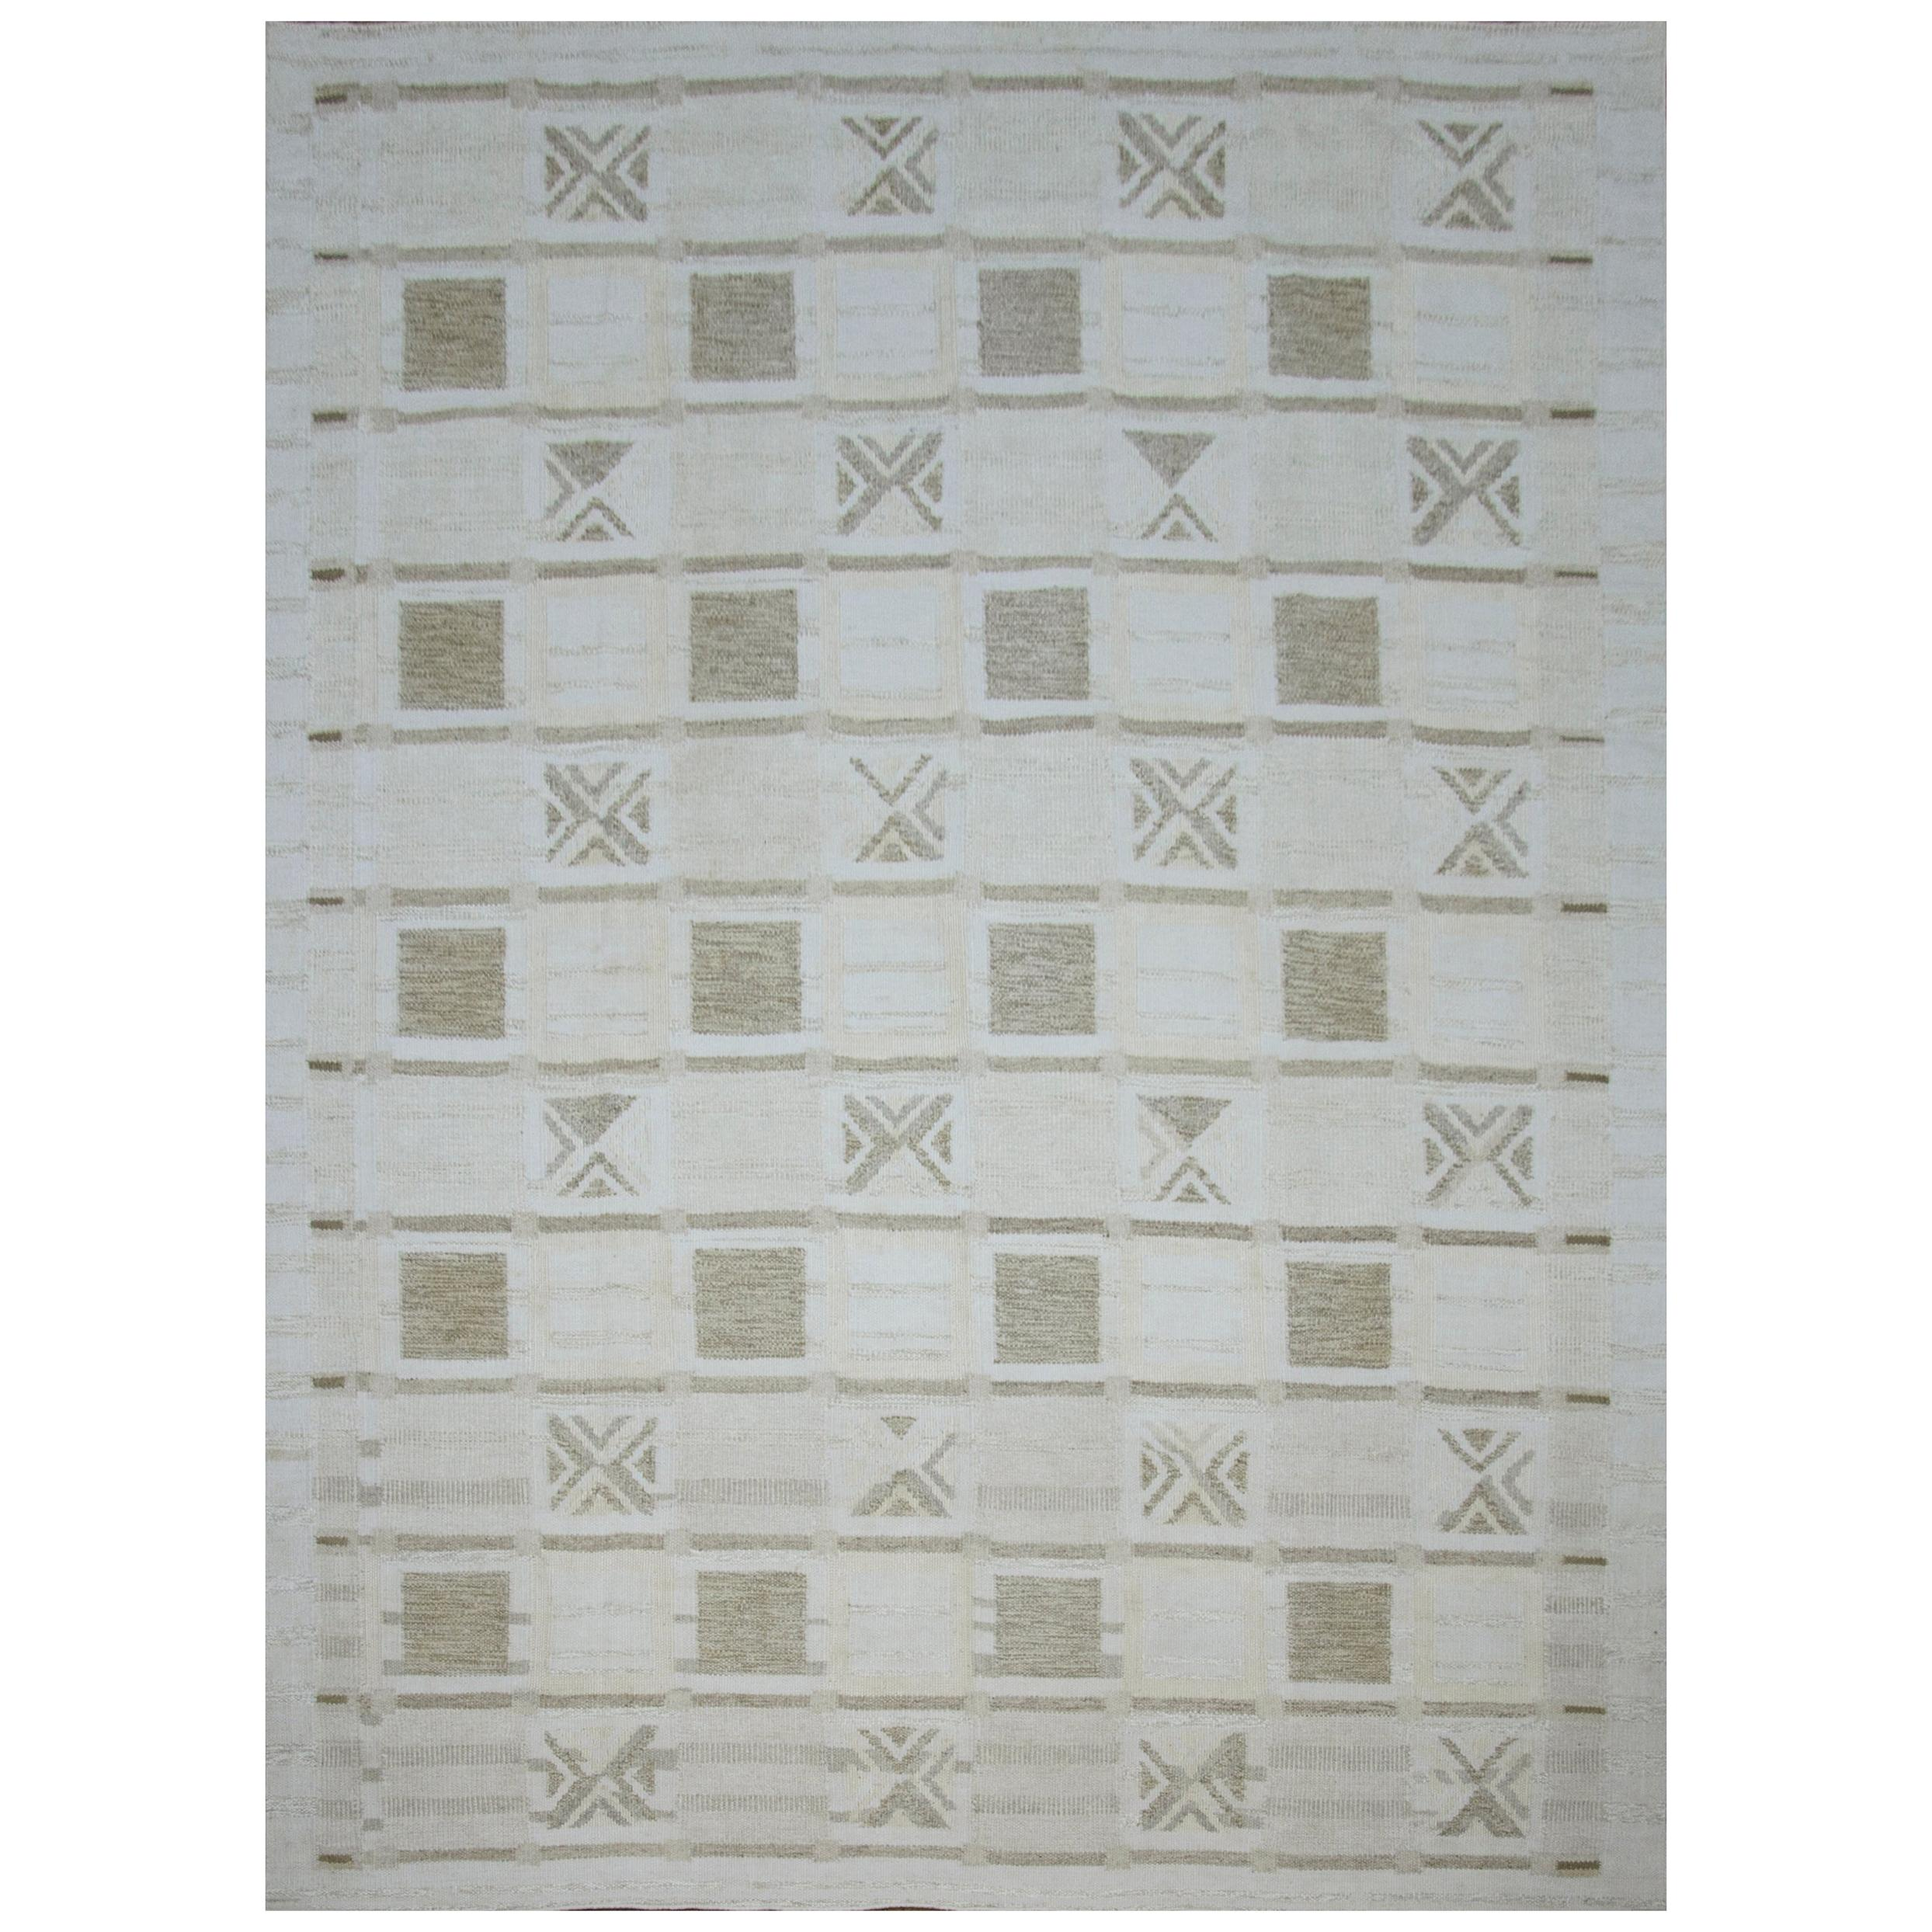 Modern Scandinavian Rug with Ivory and Gray 'Chess Board' Patterns